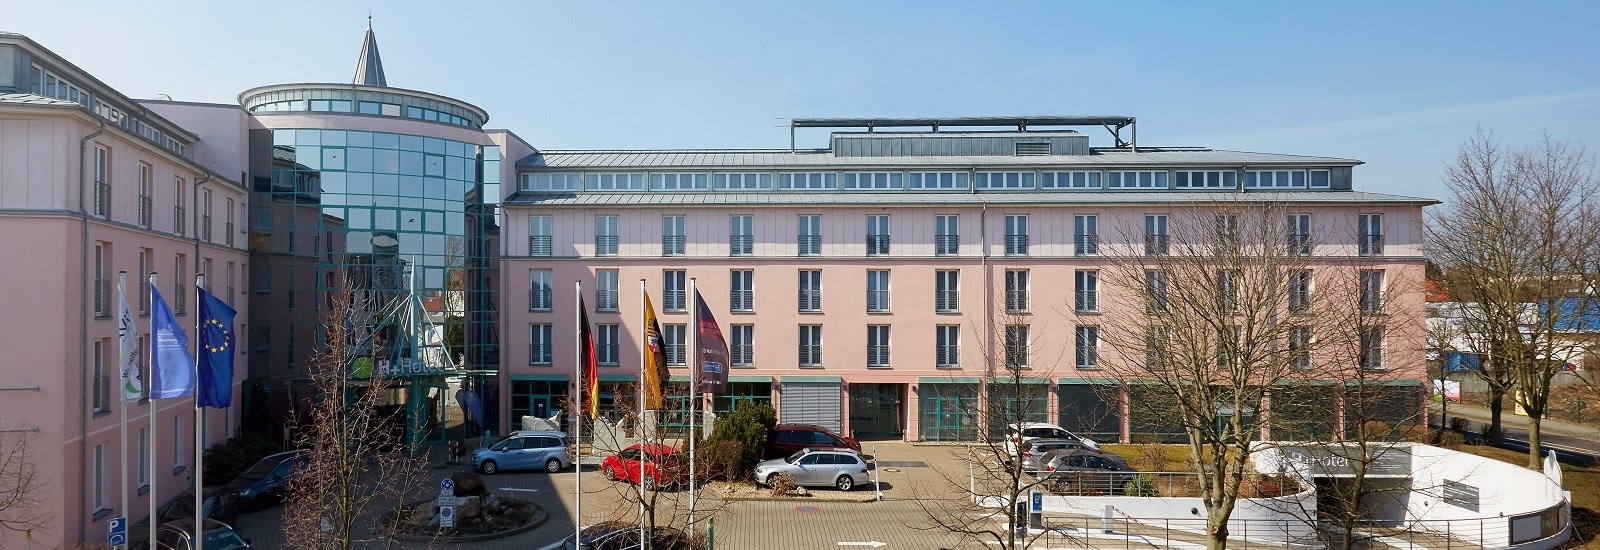 Michel Hotel Magdeburg